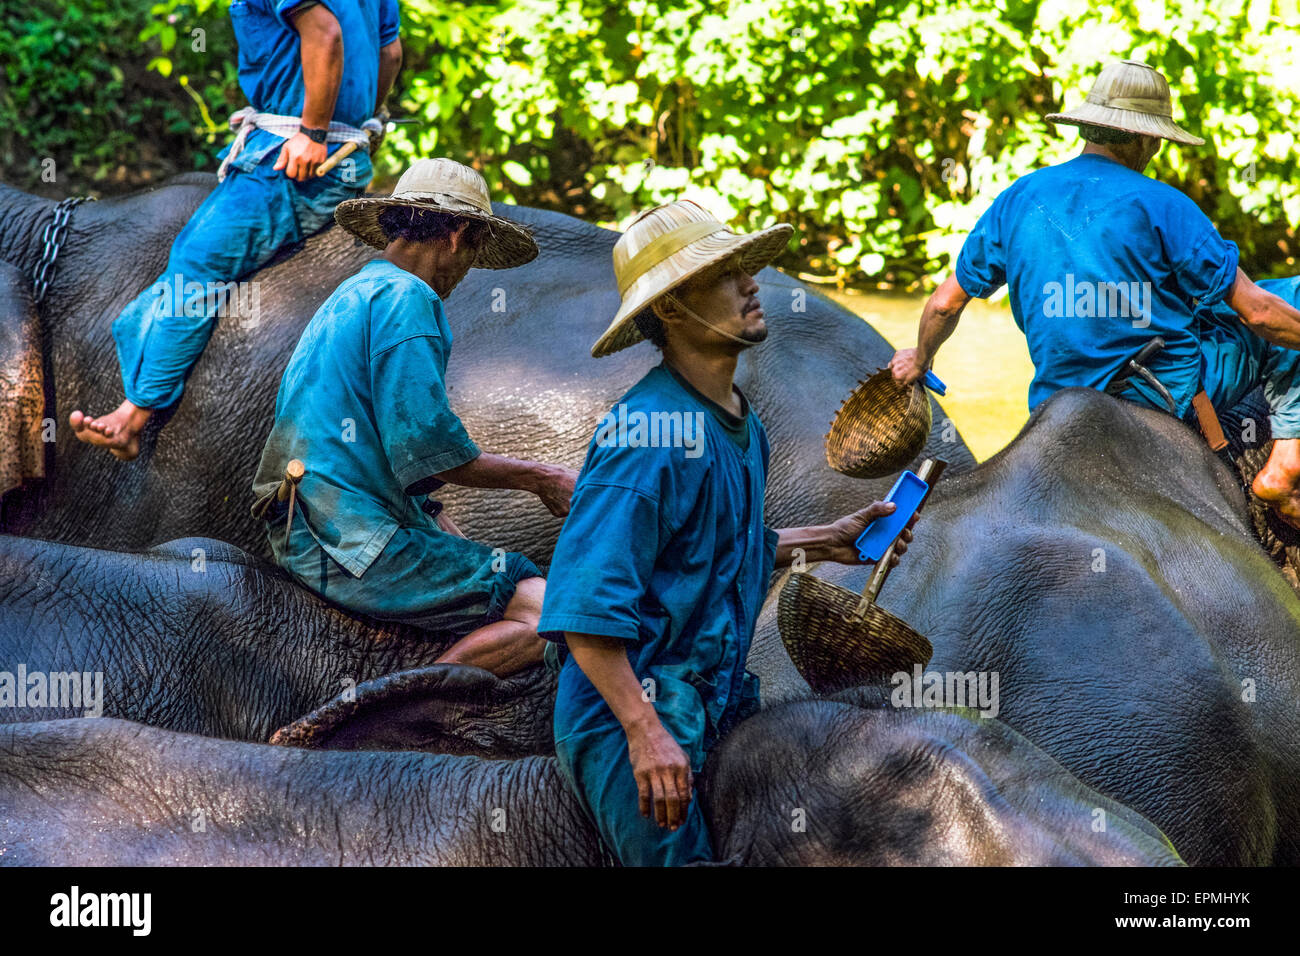 Asia. Thailand, Chiang Dao. Elephant center. Mahout and his elephant during the bath. - Stock Image